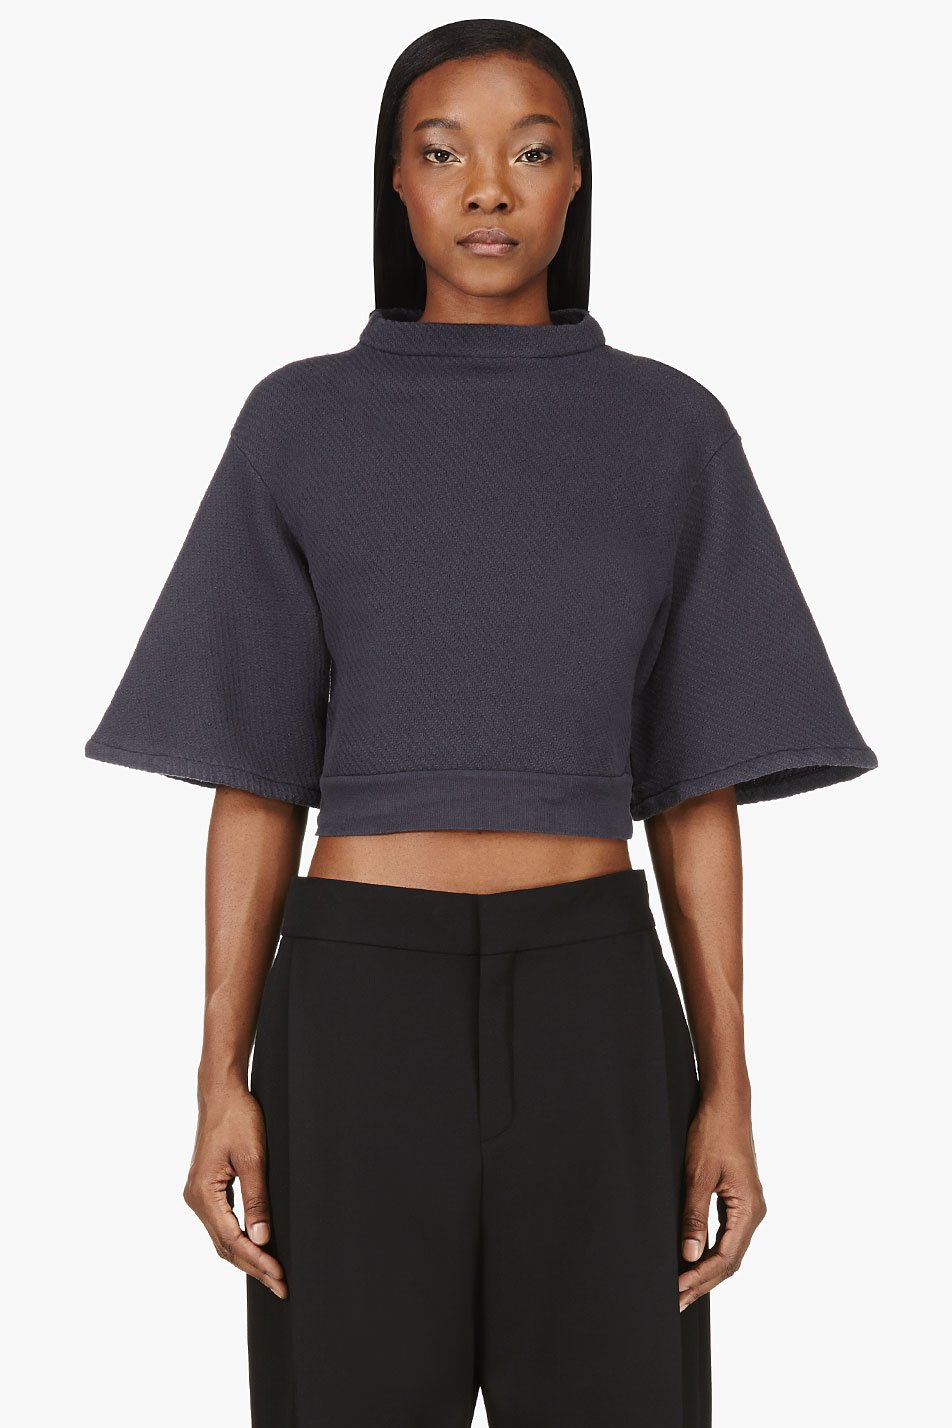 silent by damir doma slate blue textured cropped turmin sweater